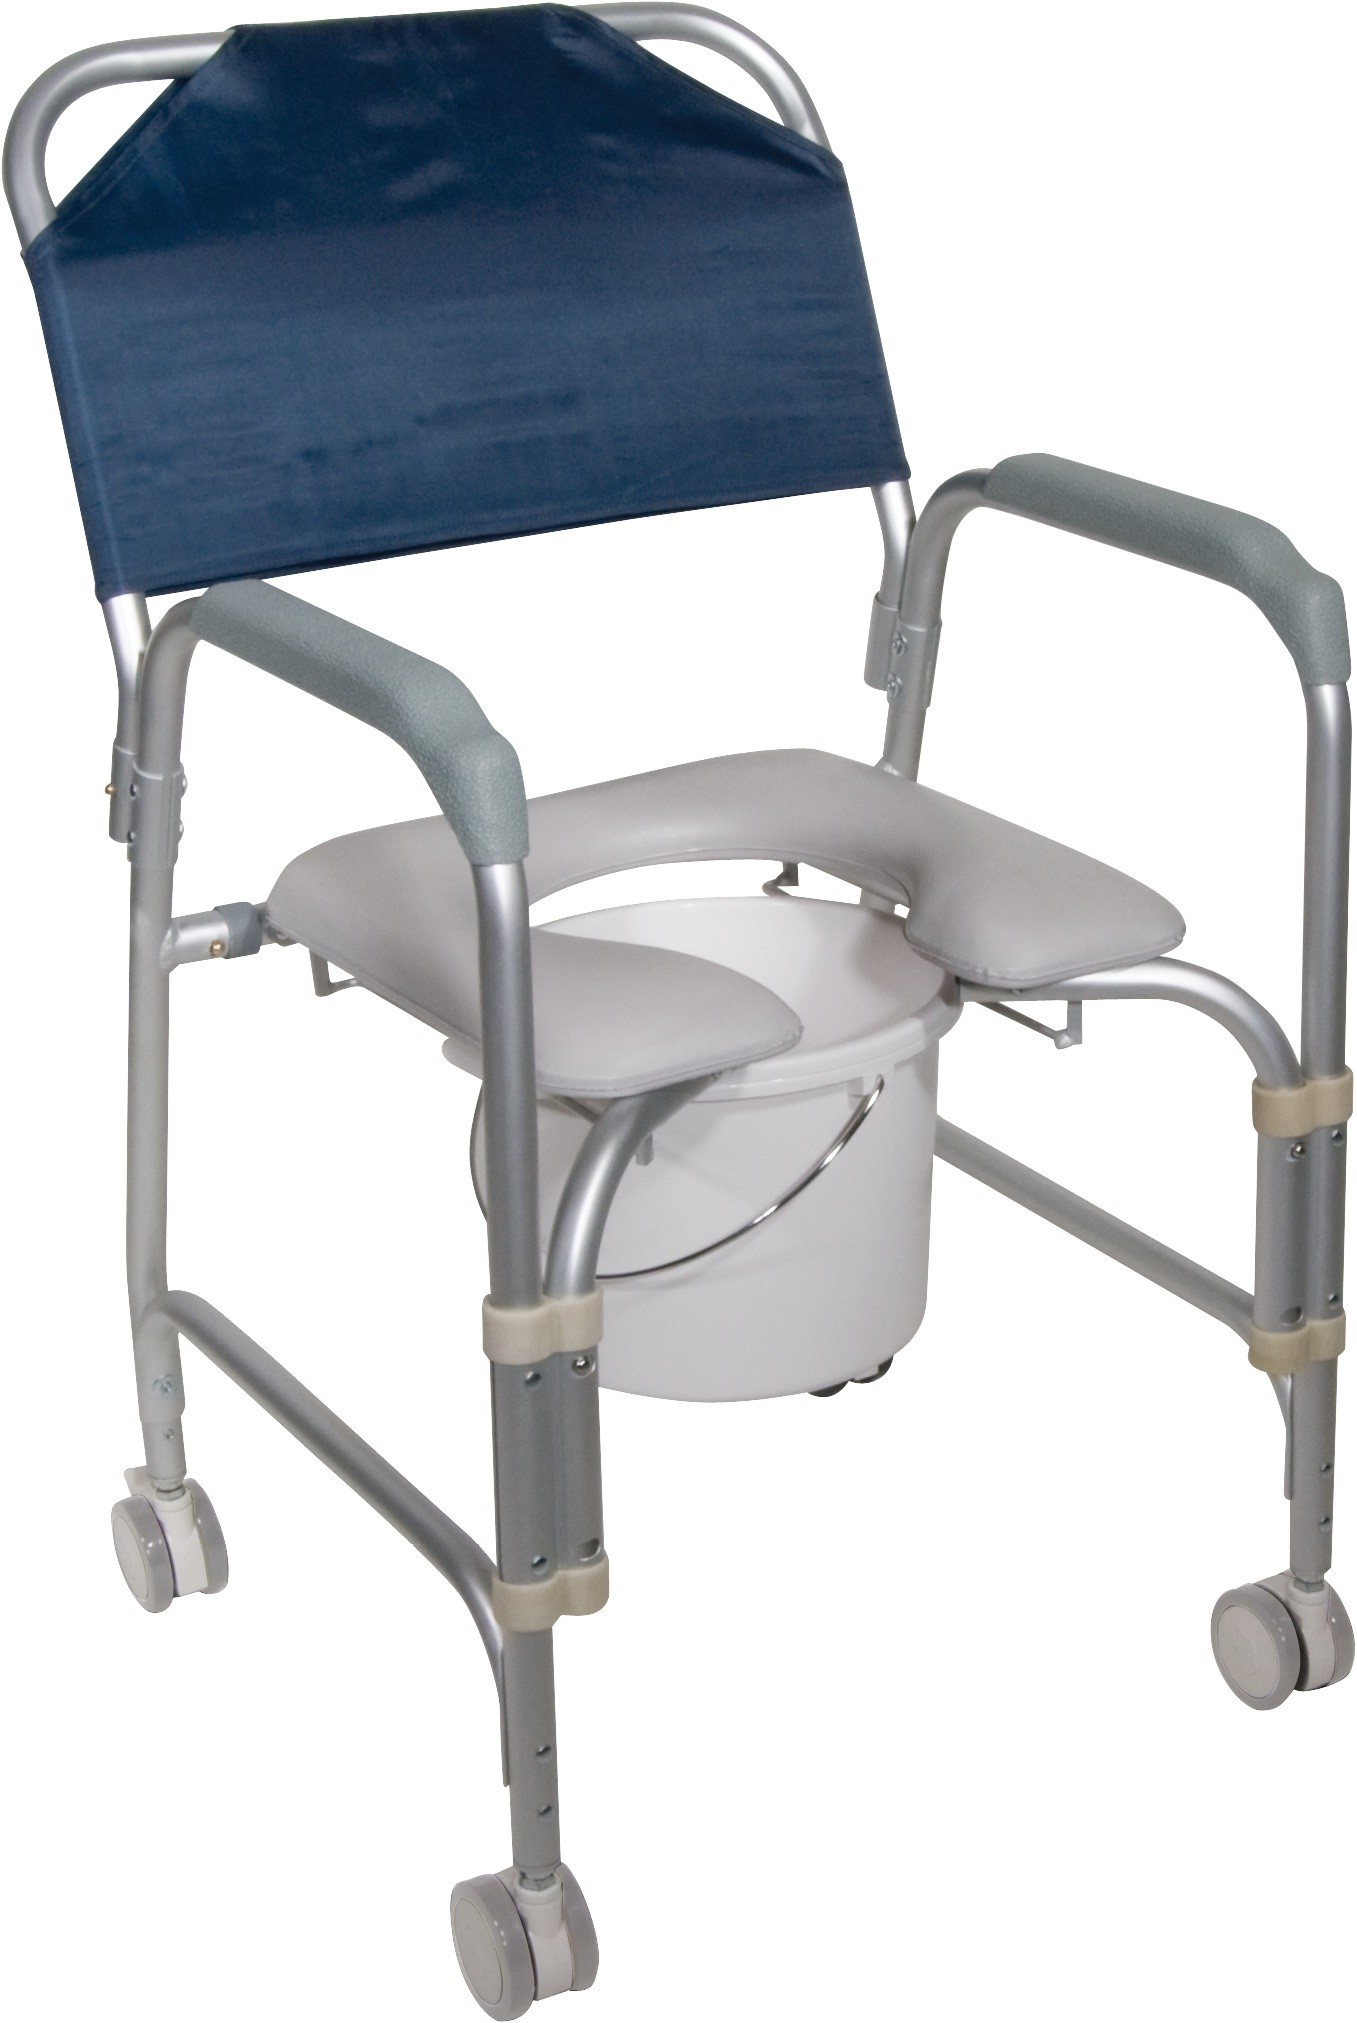 Alluminum Shower Chair & Commode w/ Casters